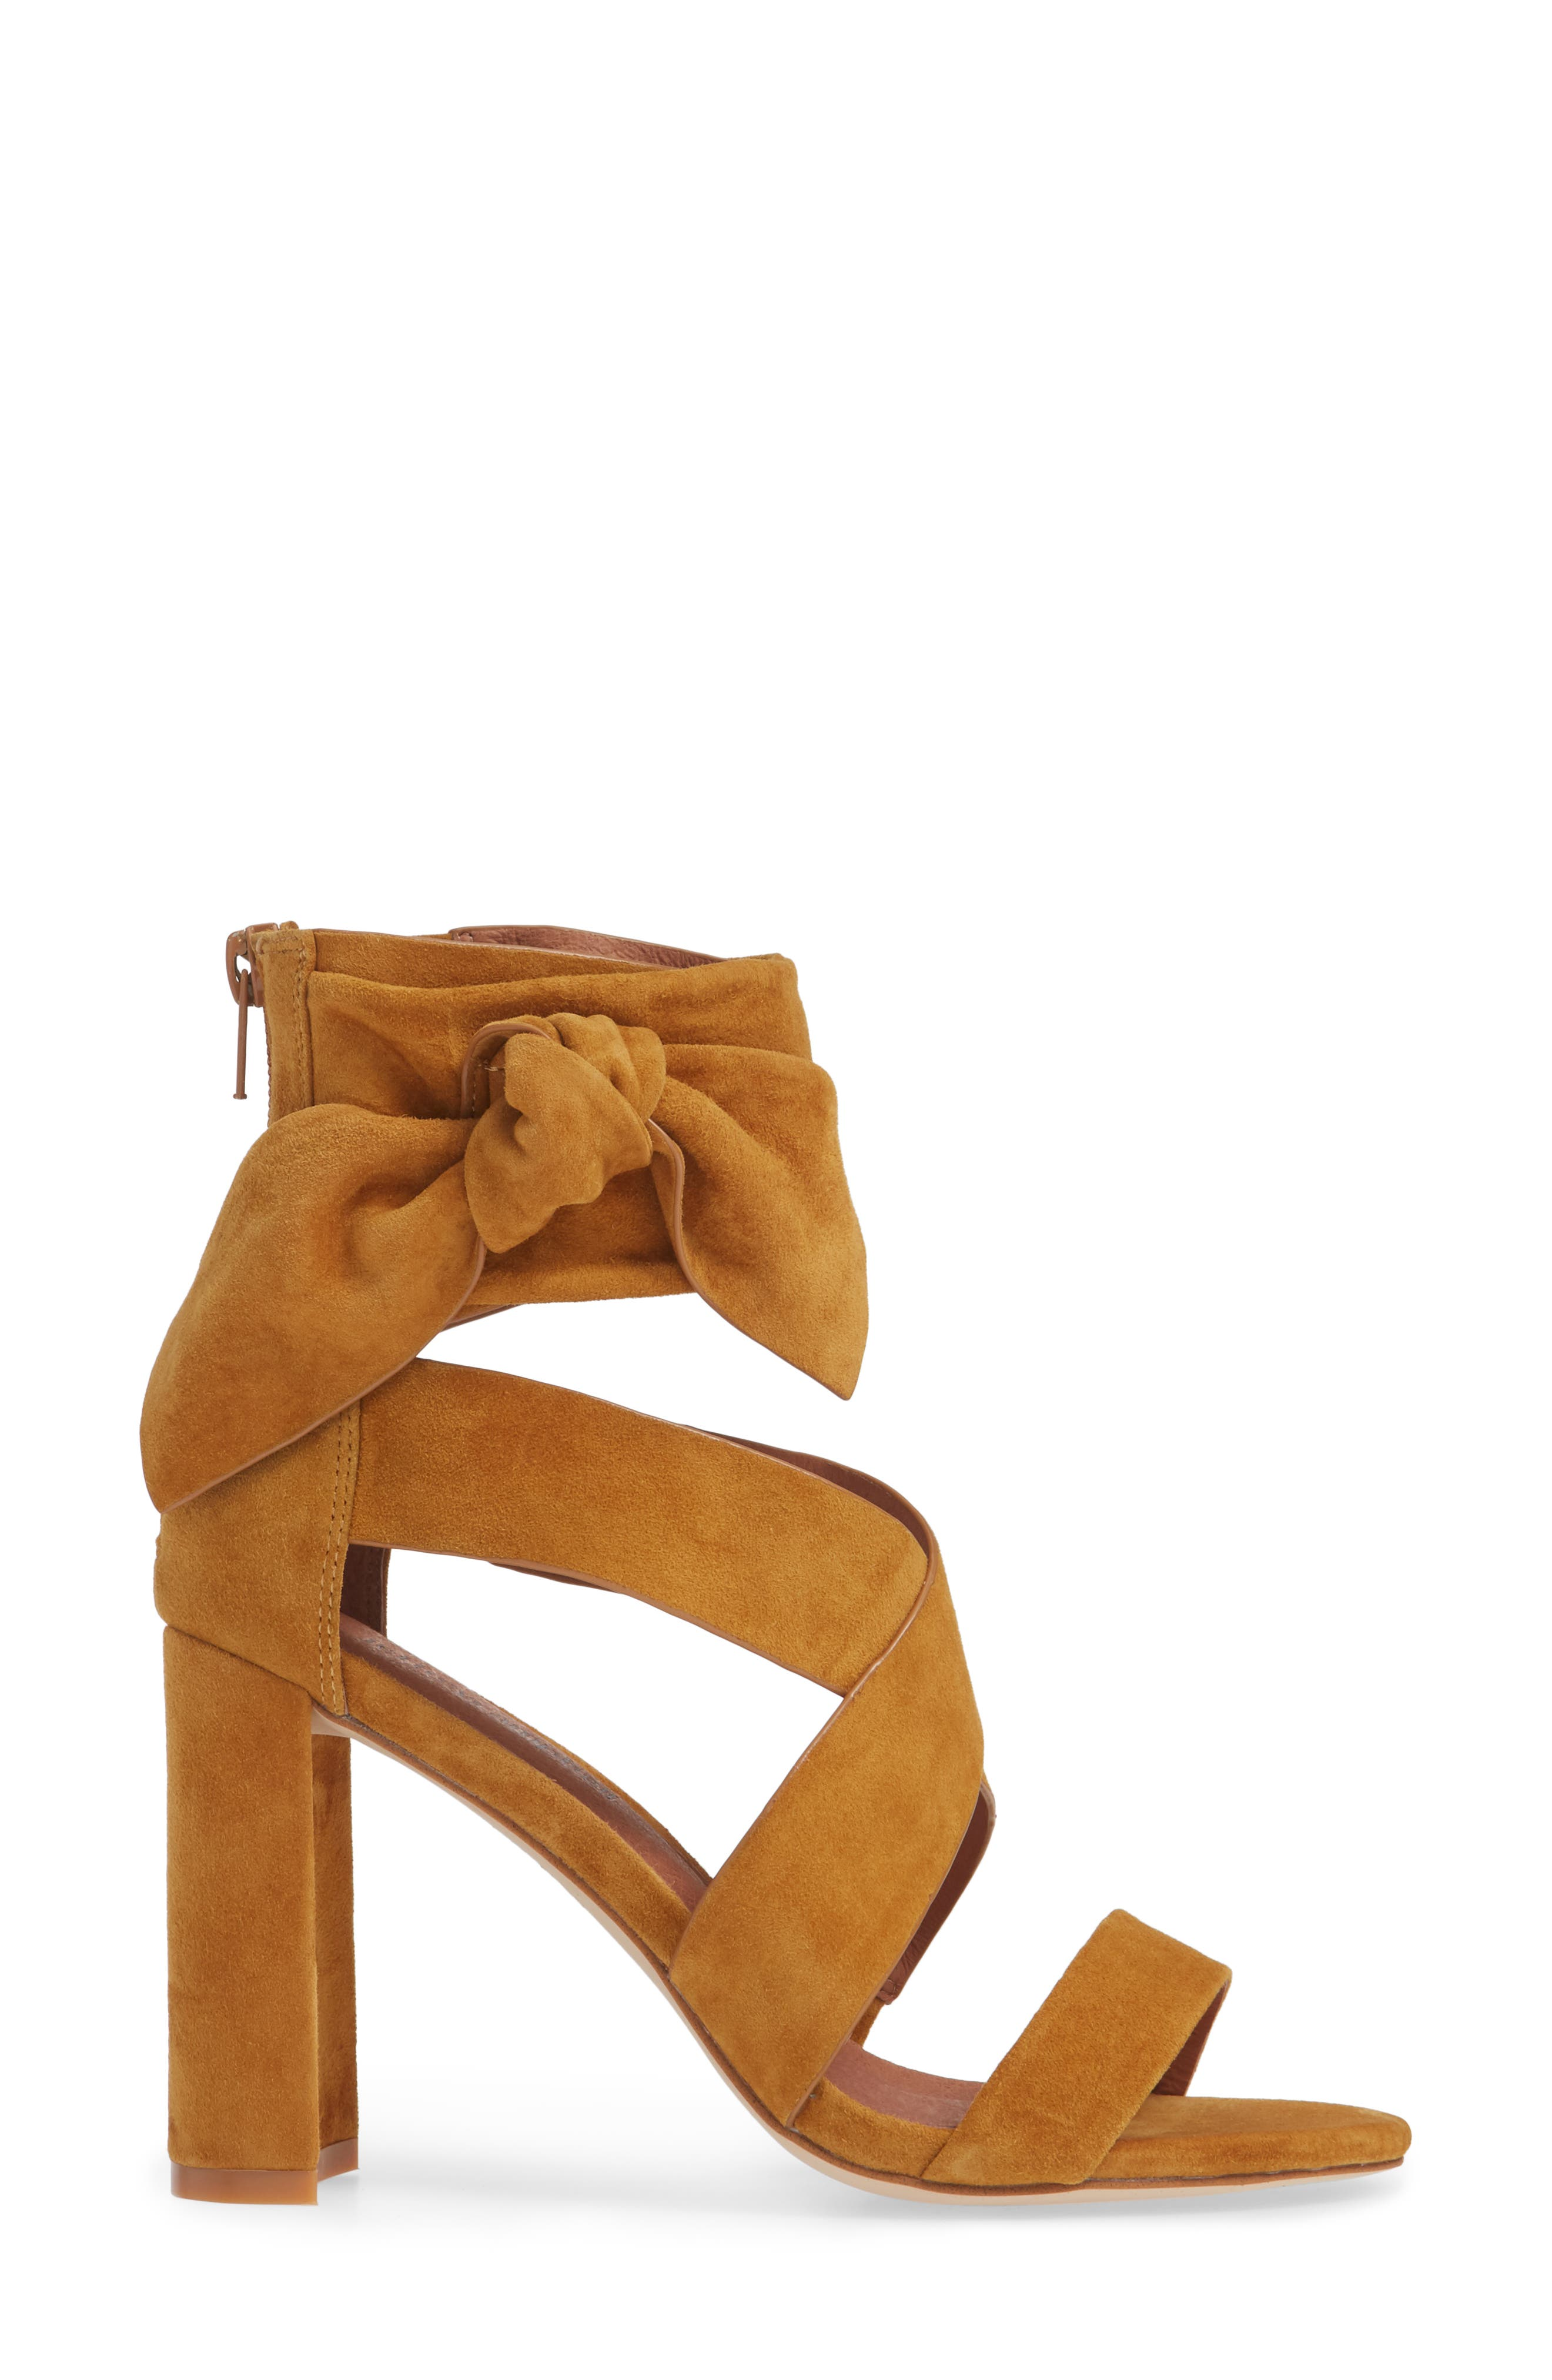 Despoina Sandal,                             Alternate thumbnail 6, color,                             Mustard Suede Leather